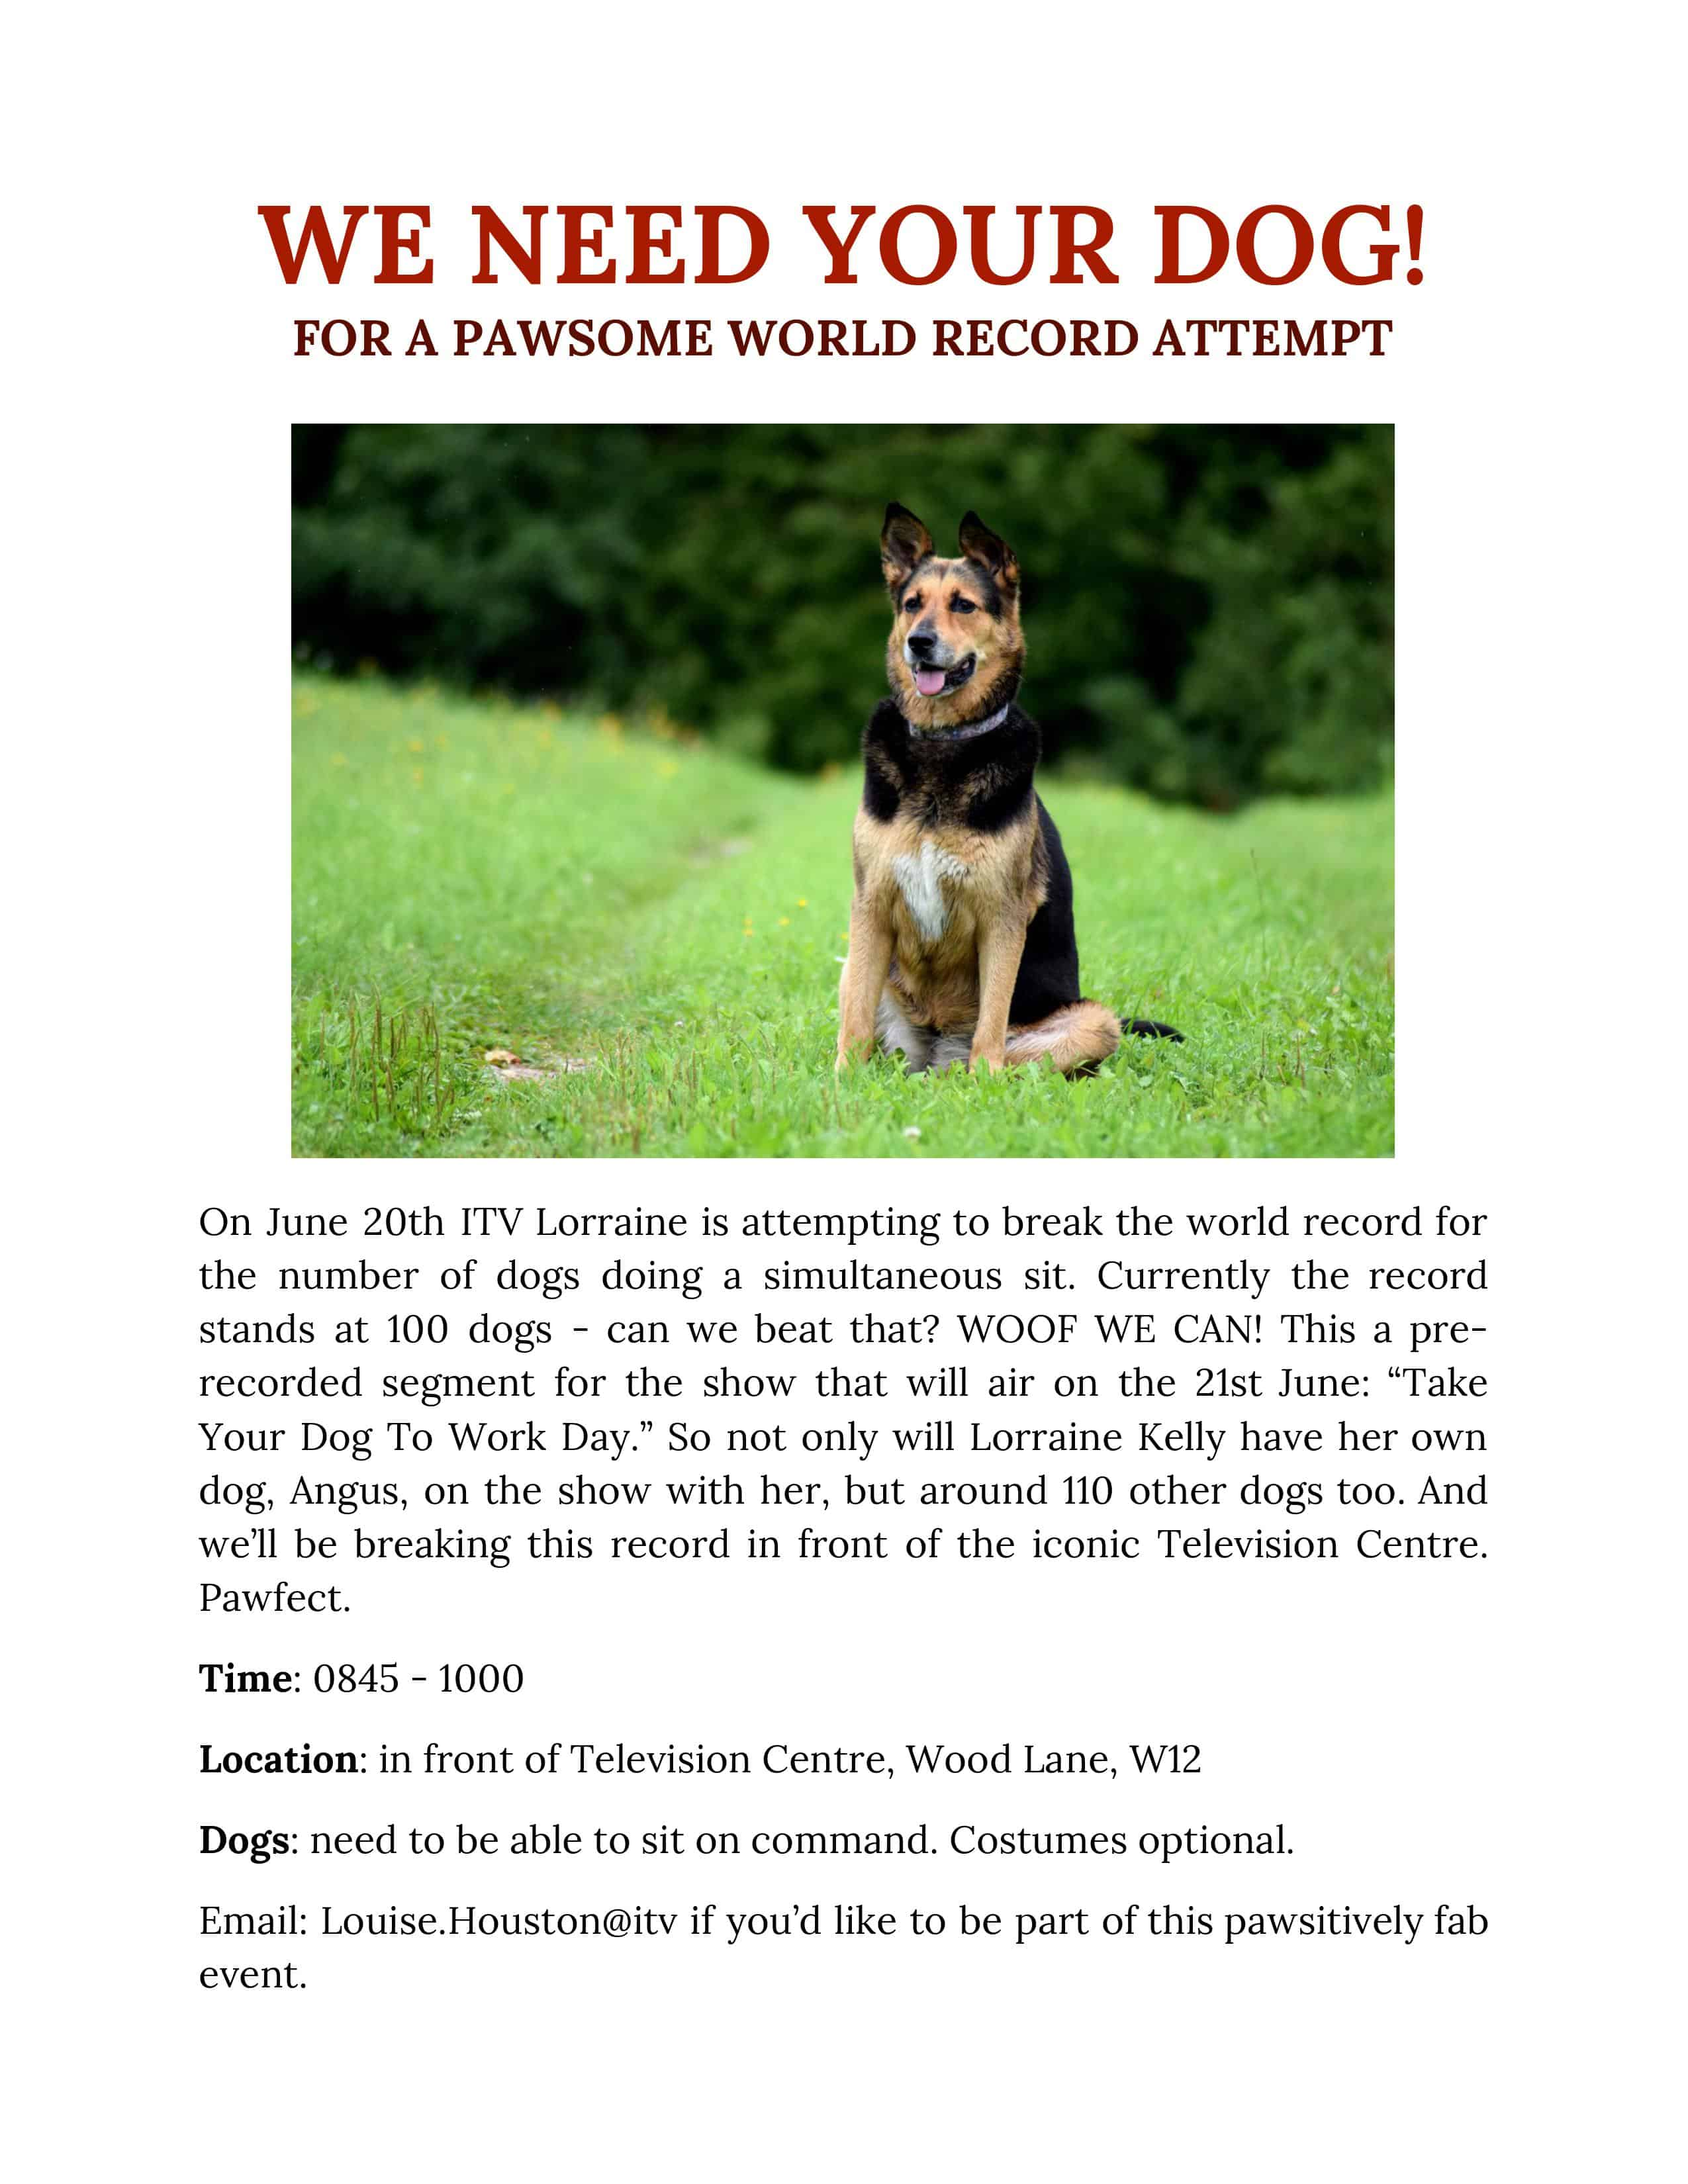 ITV World Record Attempt for Dogs Poster